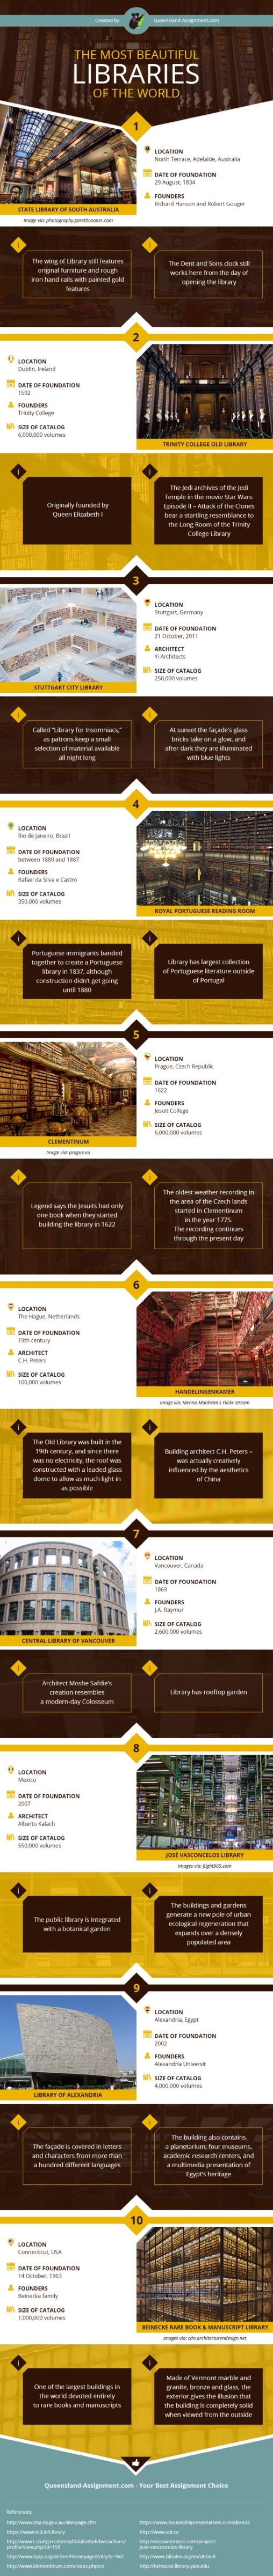 Ten-most-beautiful-libraries-in-the-world-full-infographic